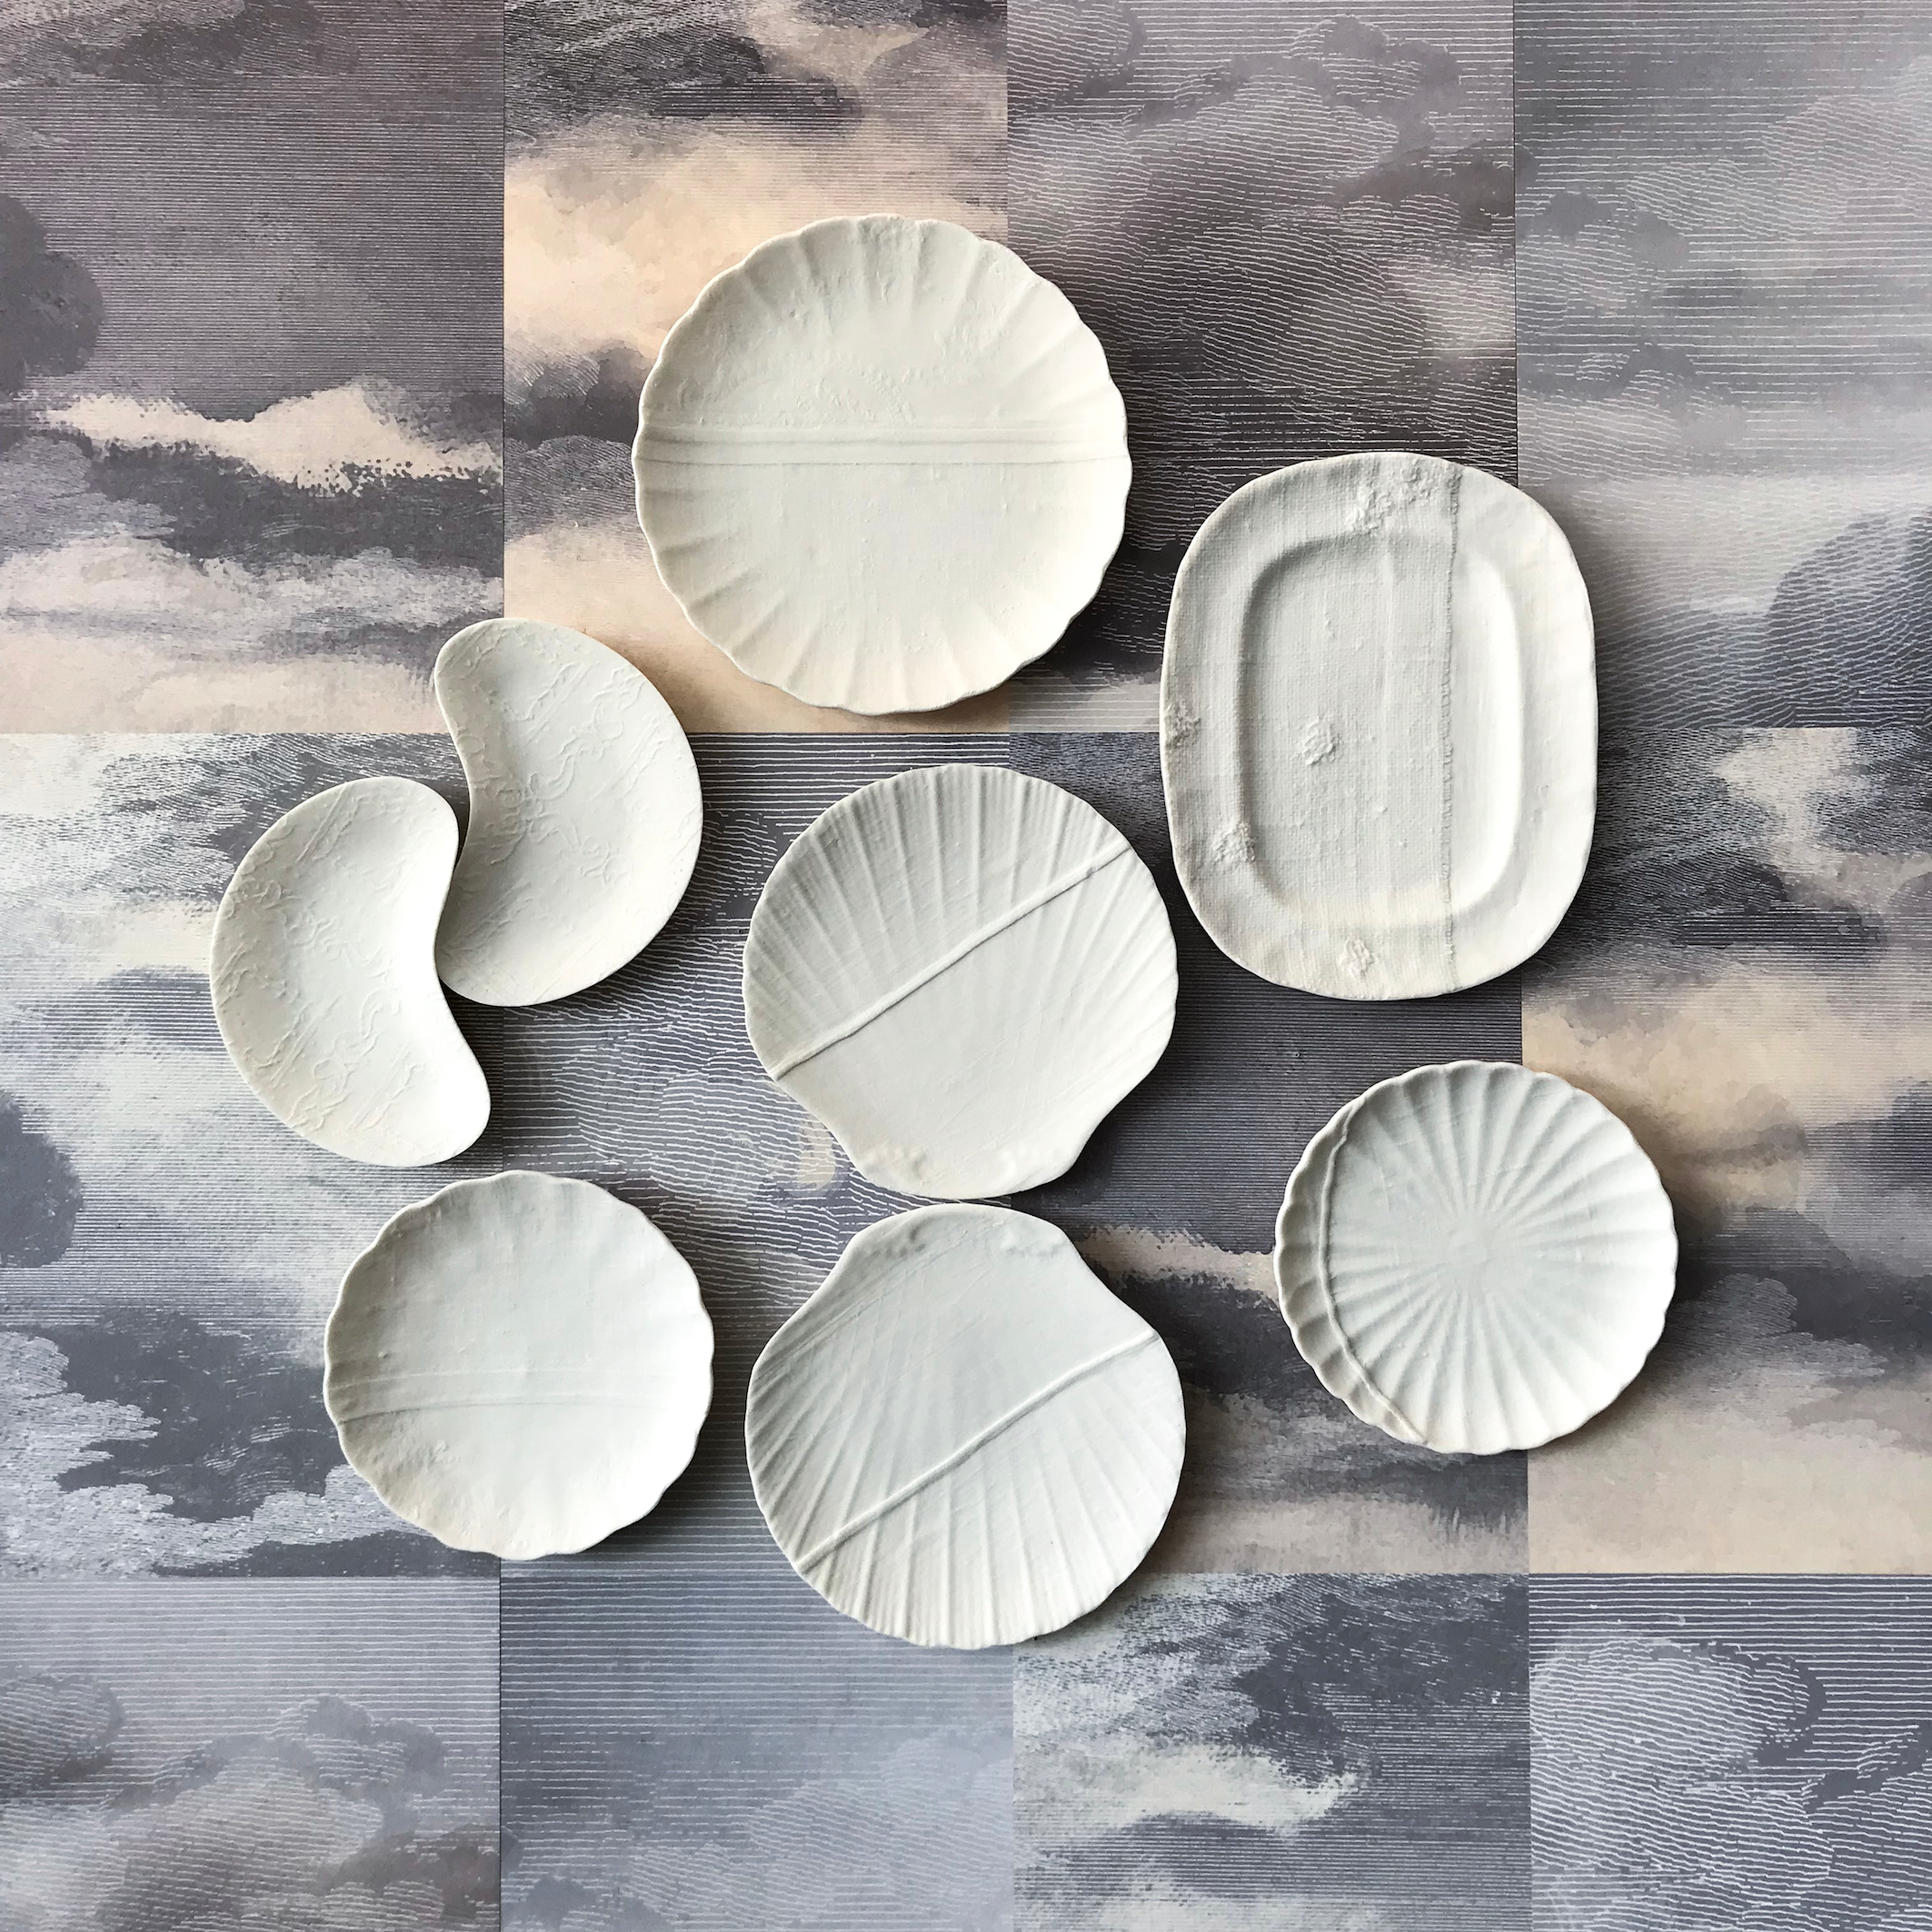 Composition in white porcelain